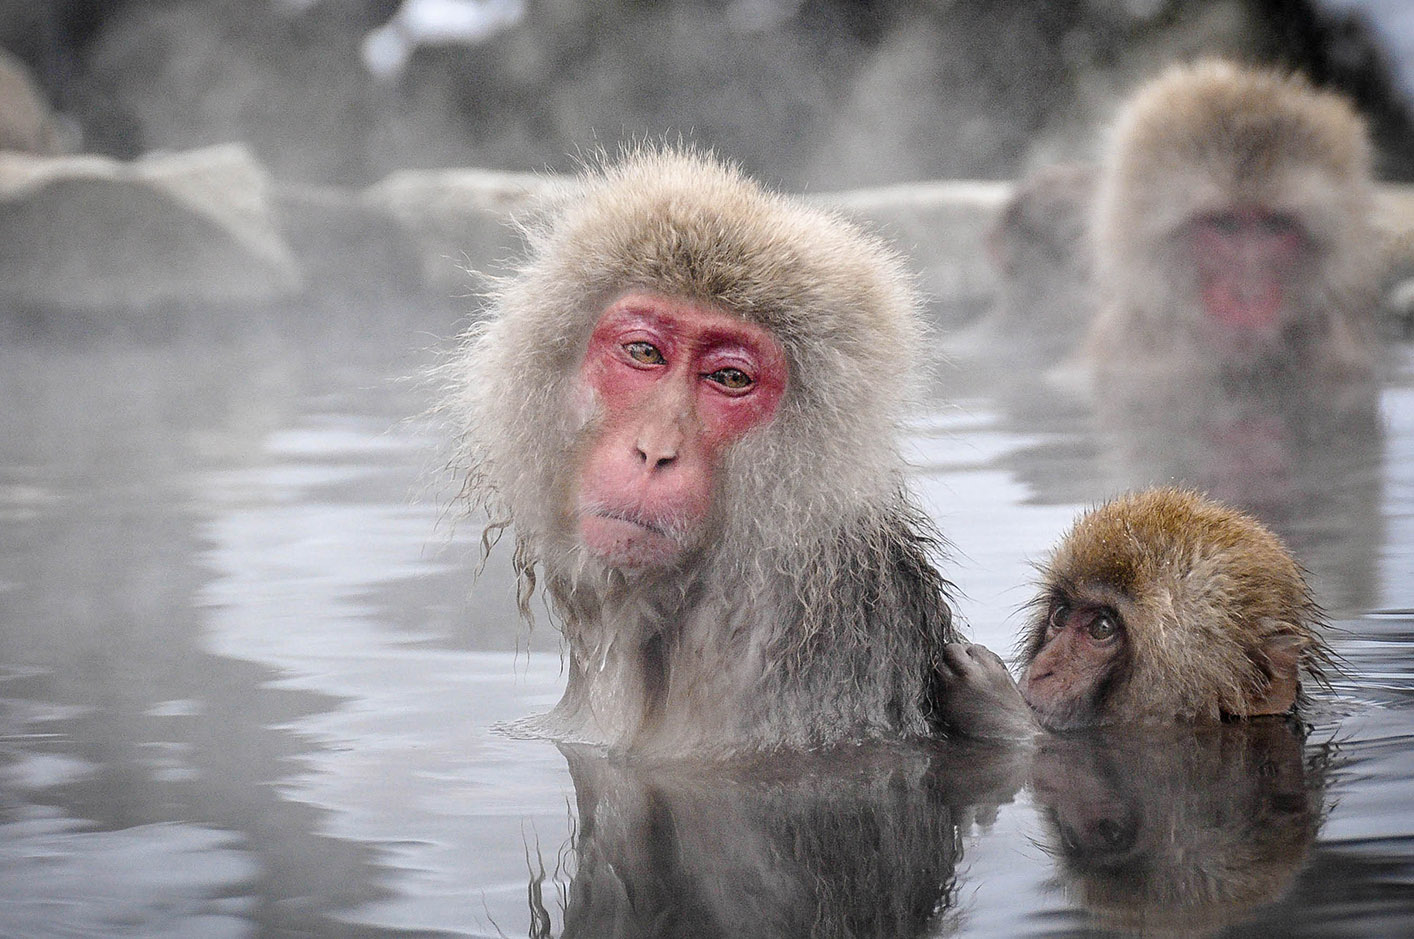 Snow Monkeys in Japan First timers Guide